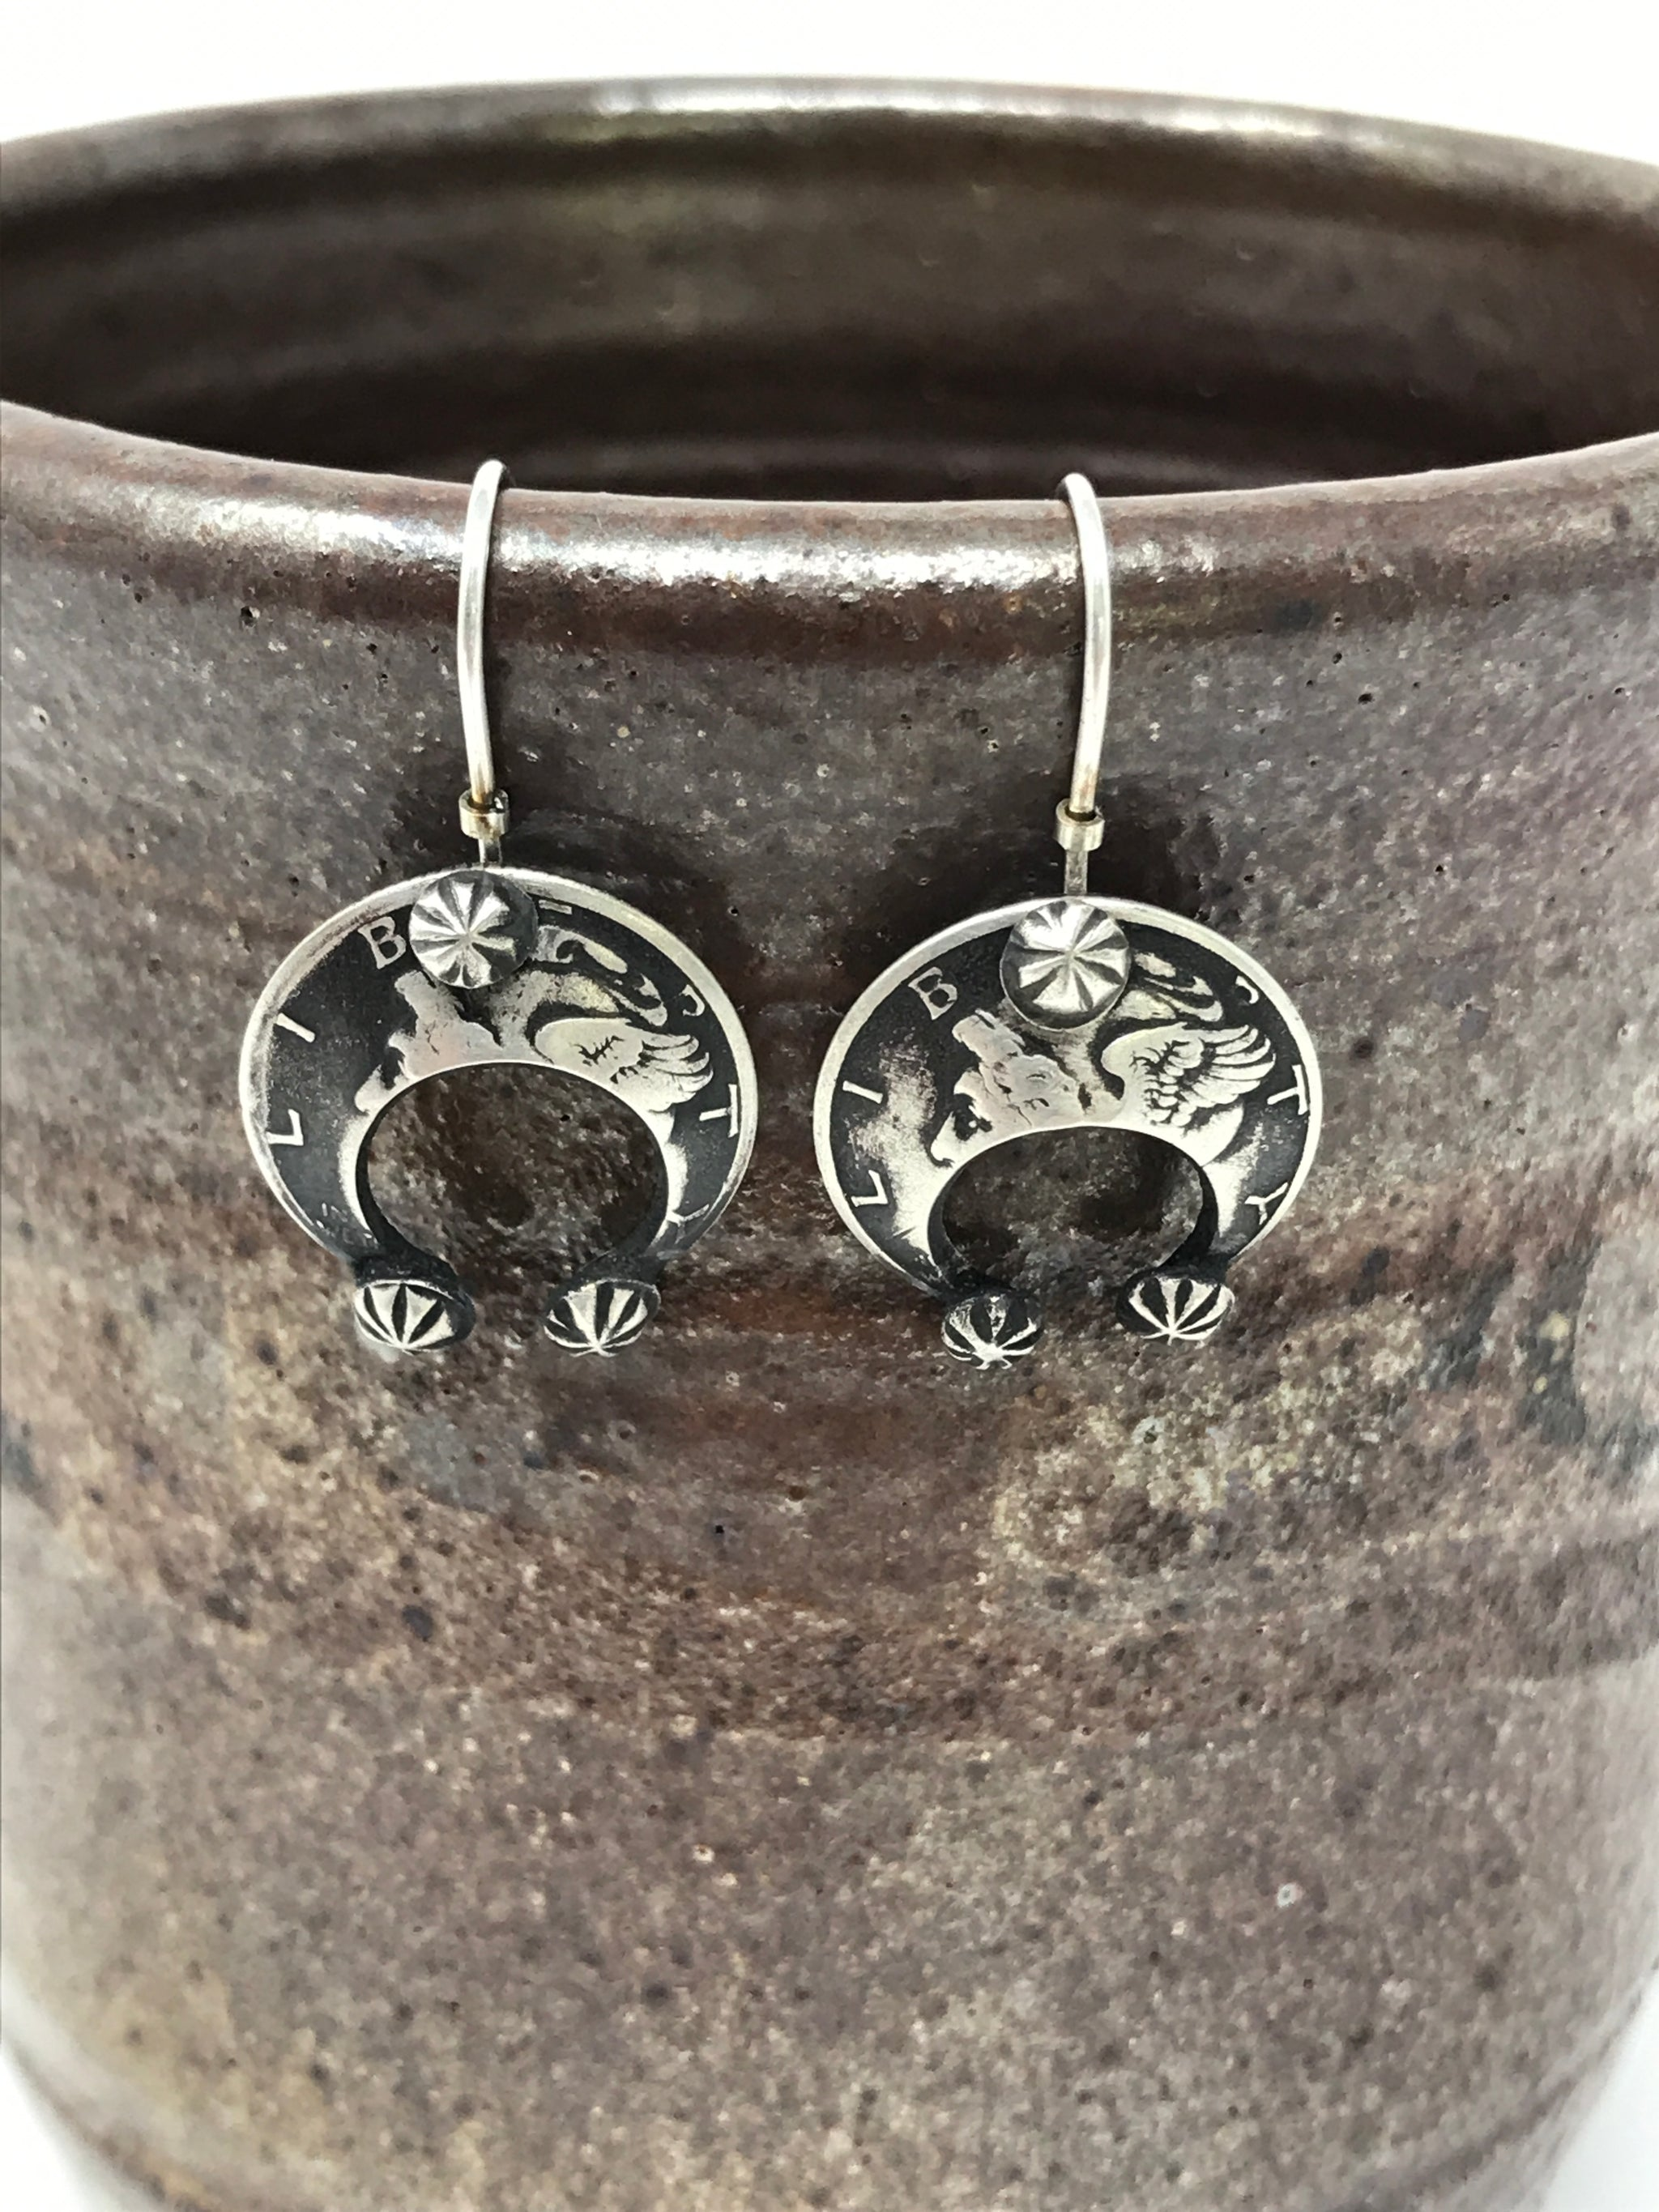 Silver Naja Earrings made from Mercury Dimes